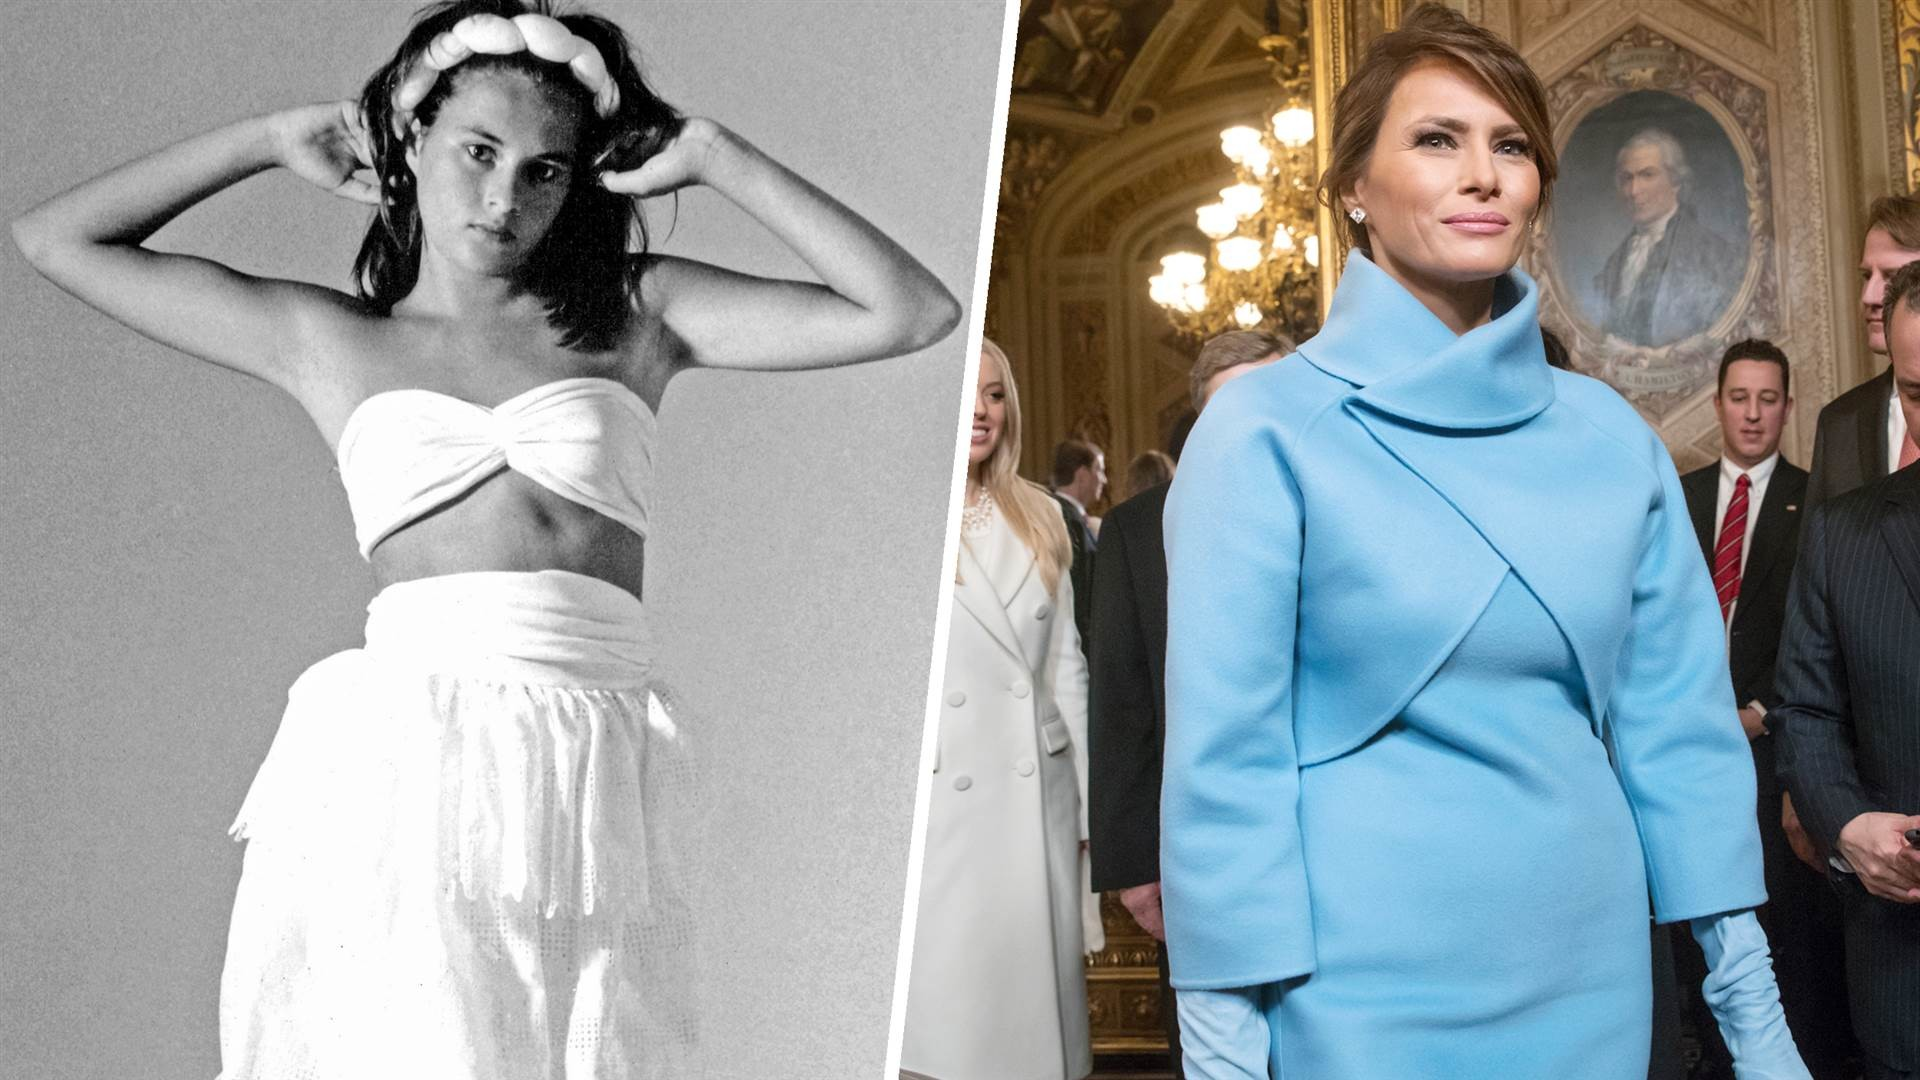 Melania Trump's fashion evolution: From model to first lady